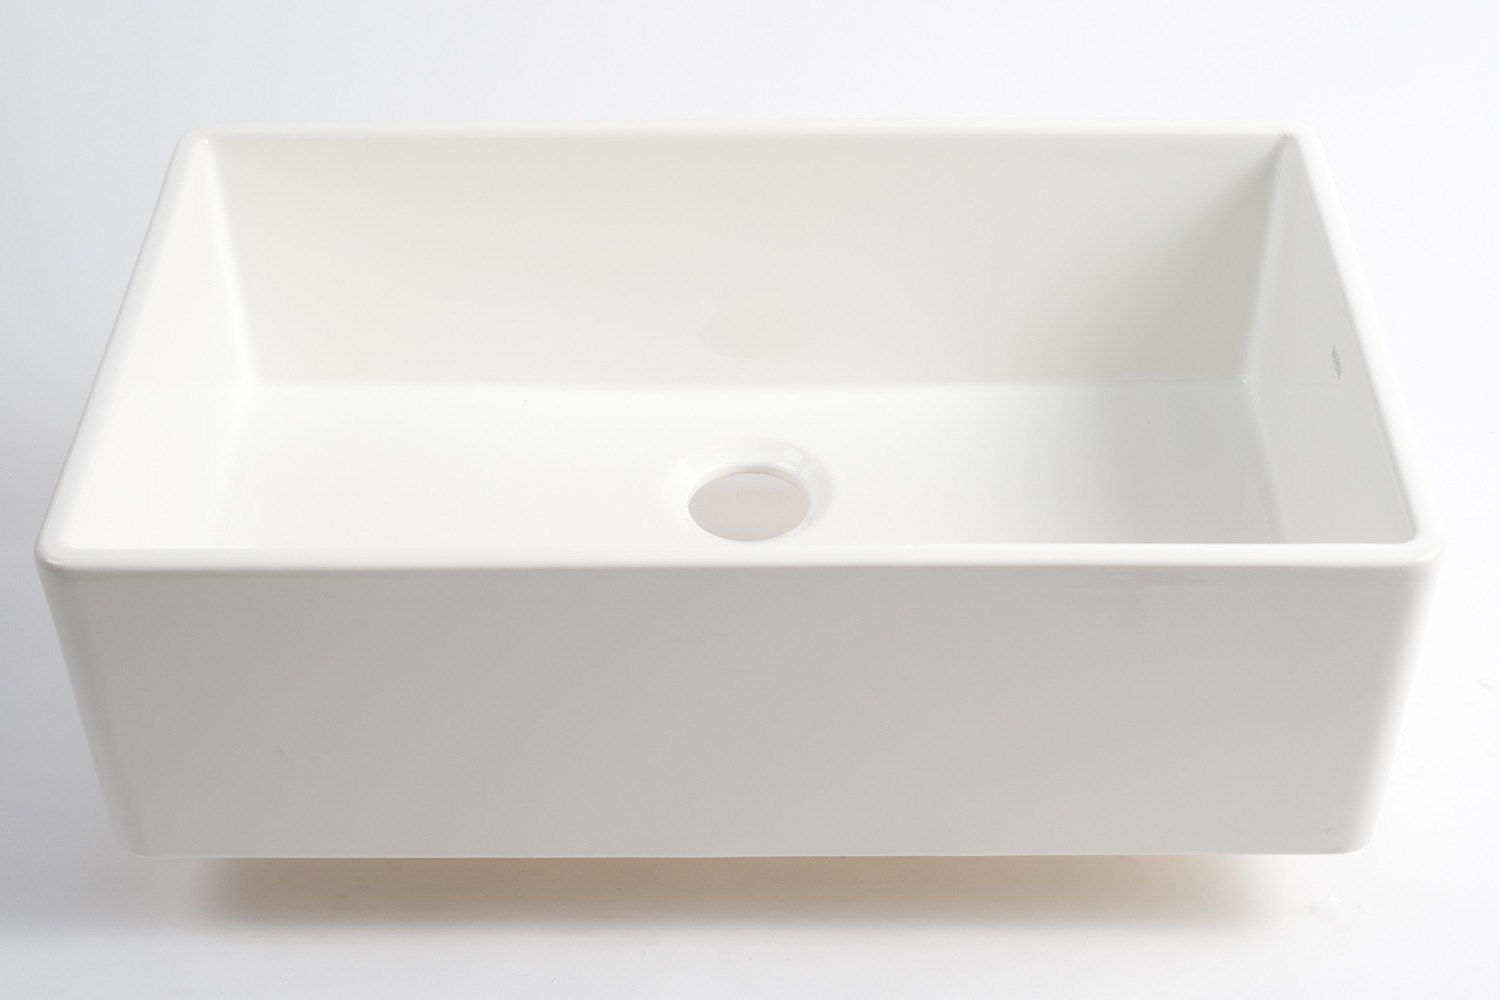 30 Inch Fireclay Farmhouse Sink : FHK710-30 Farm House 30 Inch Apron Front Single Bowl Fireclay Sink ...